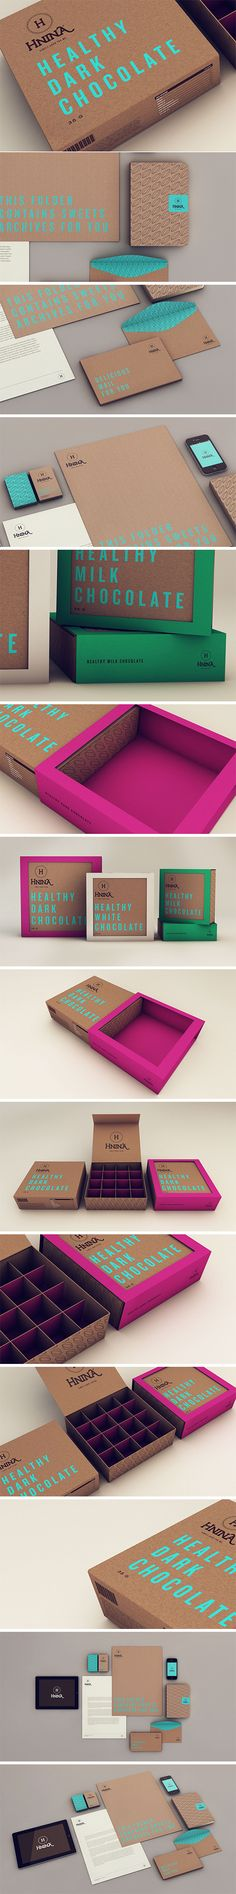 #Chocolate? Consistent #branding and all #WeCanDoThisForYou